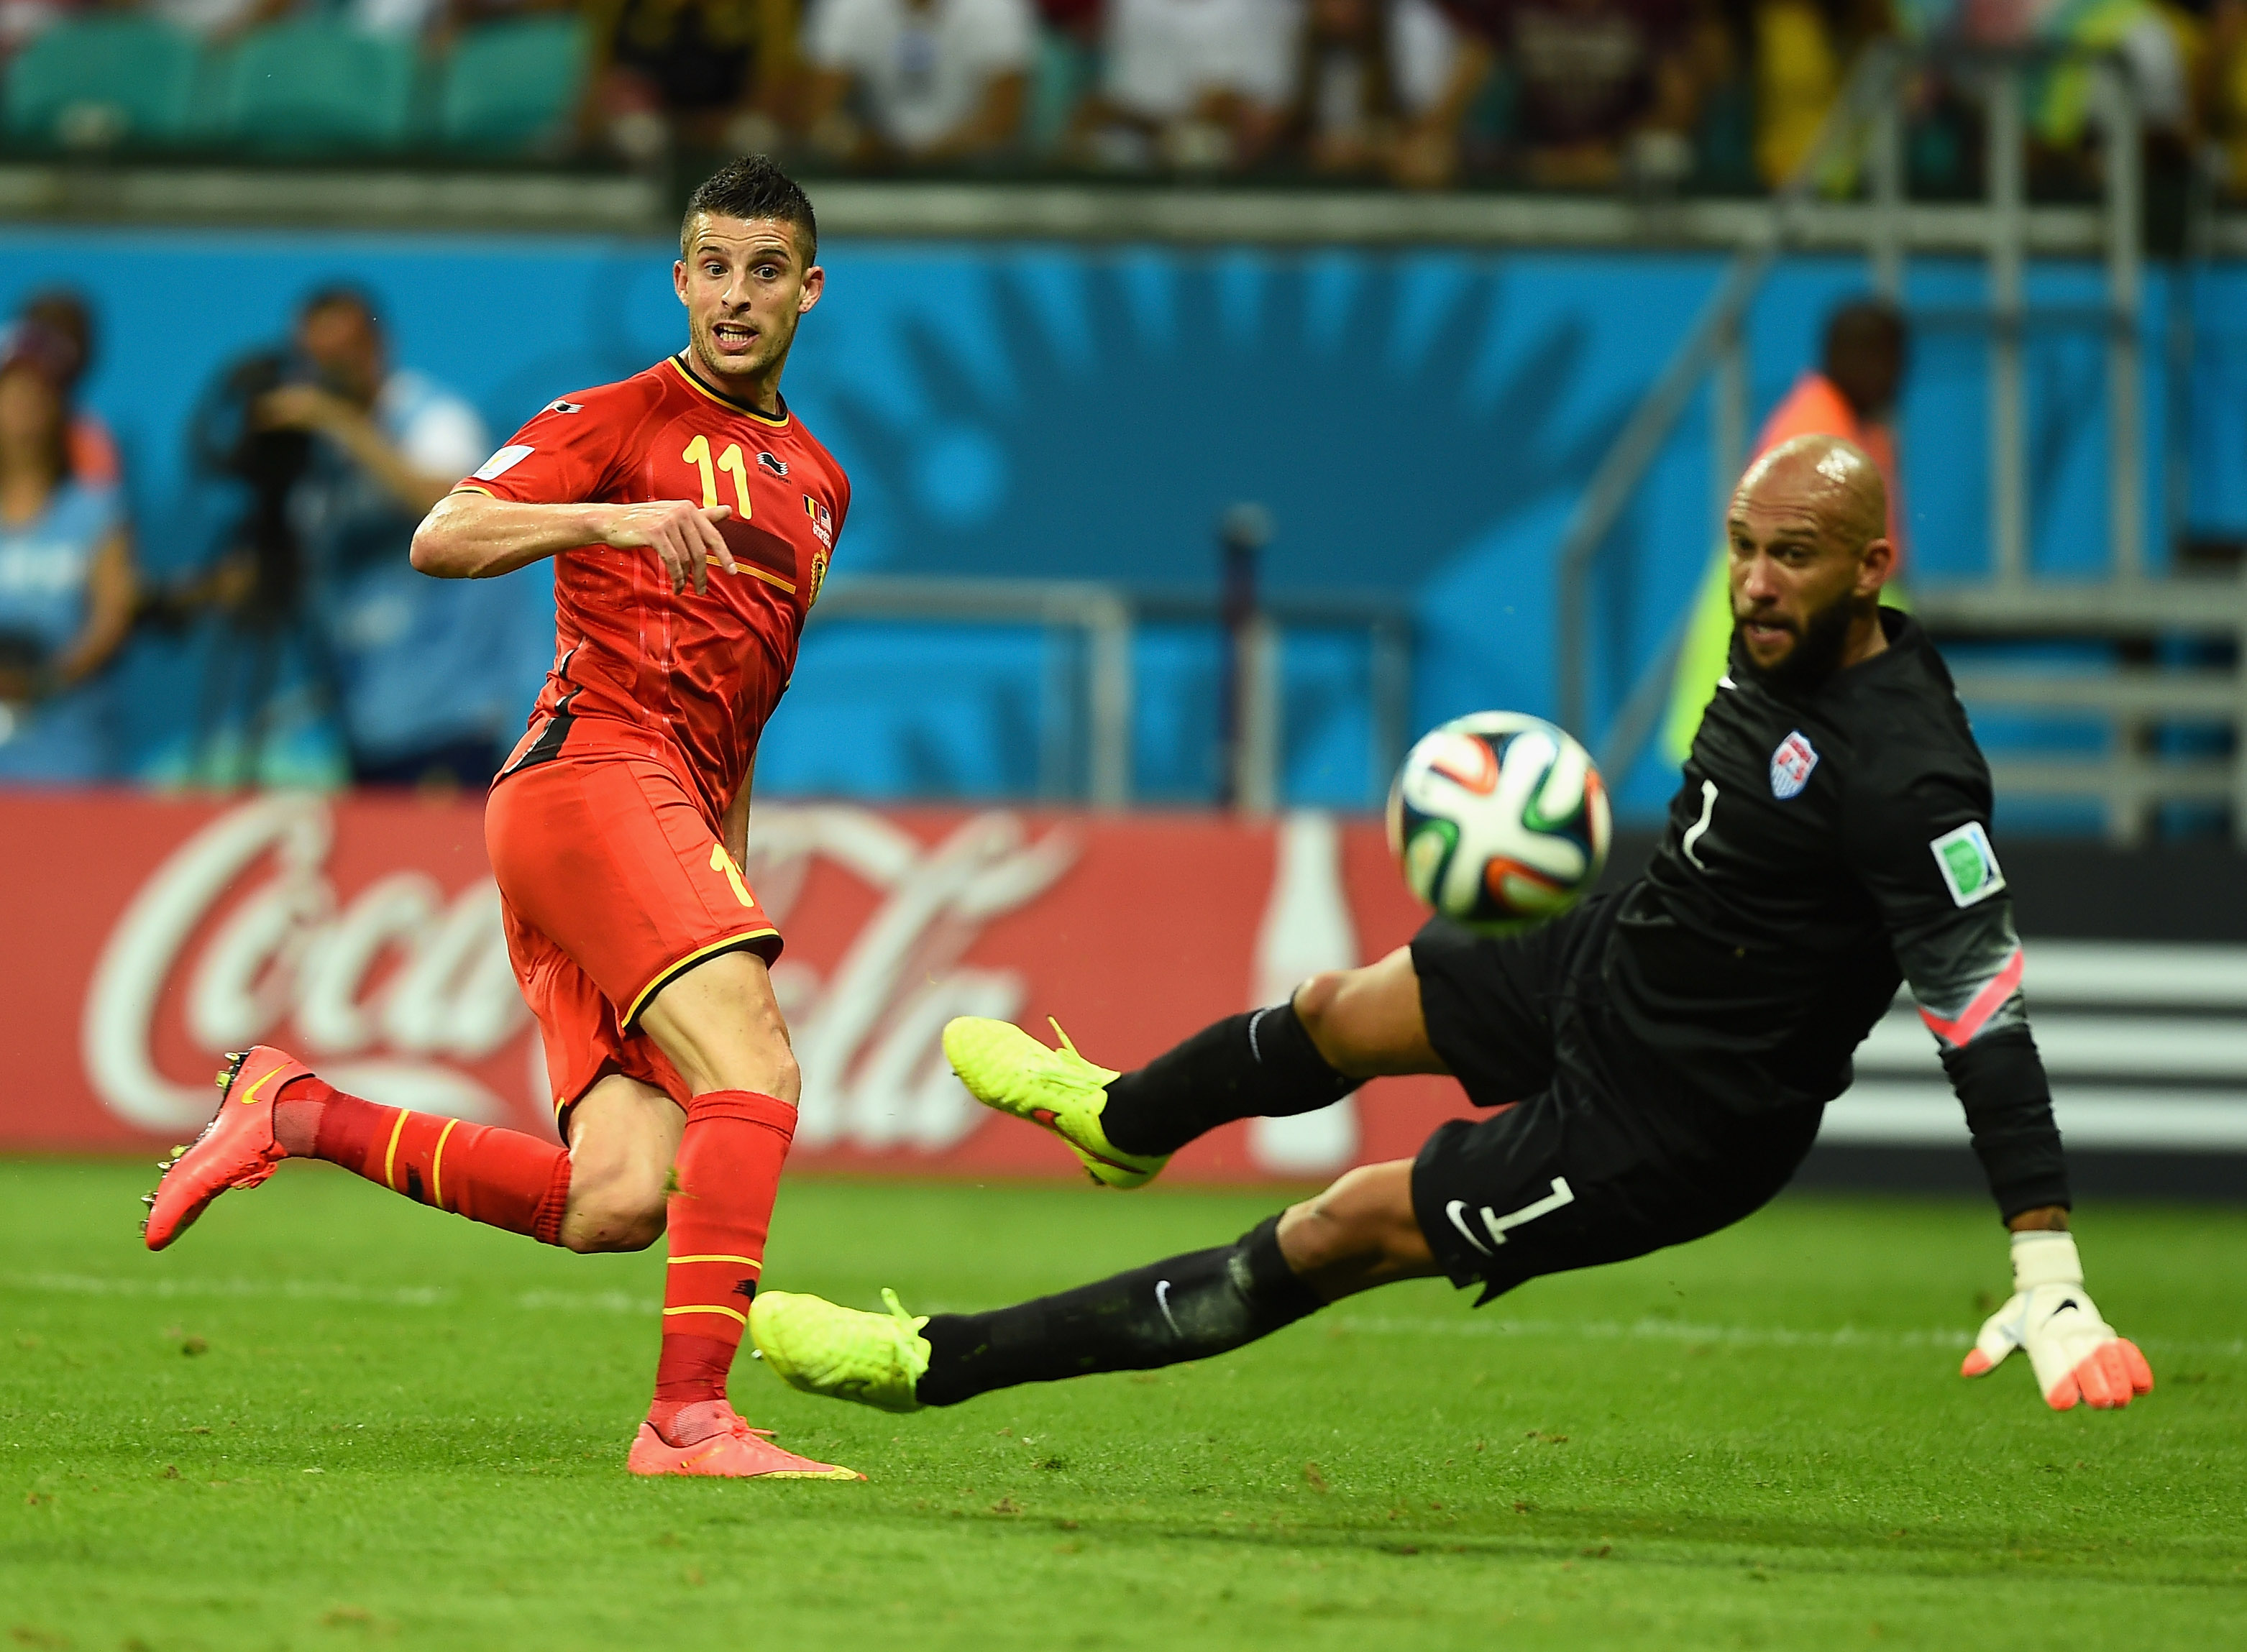 1H v 2G: Round of 16 – 2014 FIFA World Cup Brazil